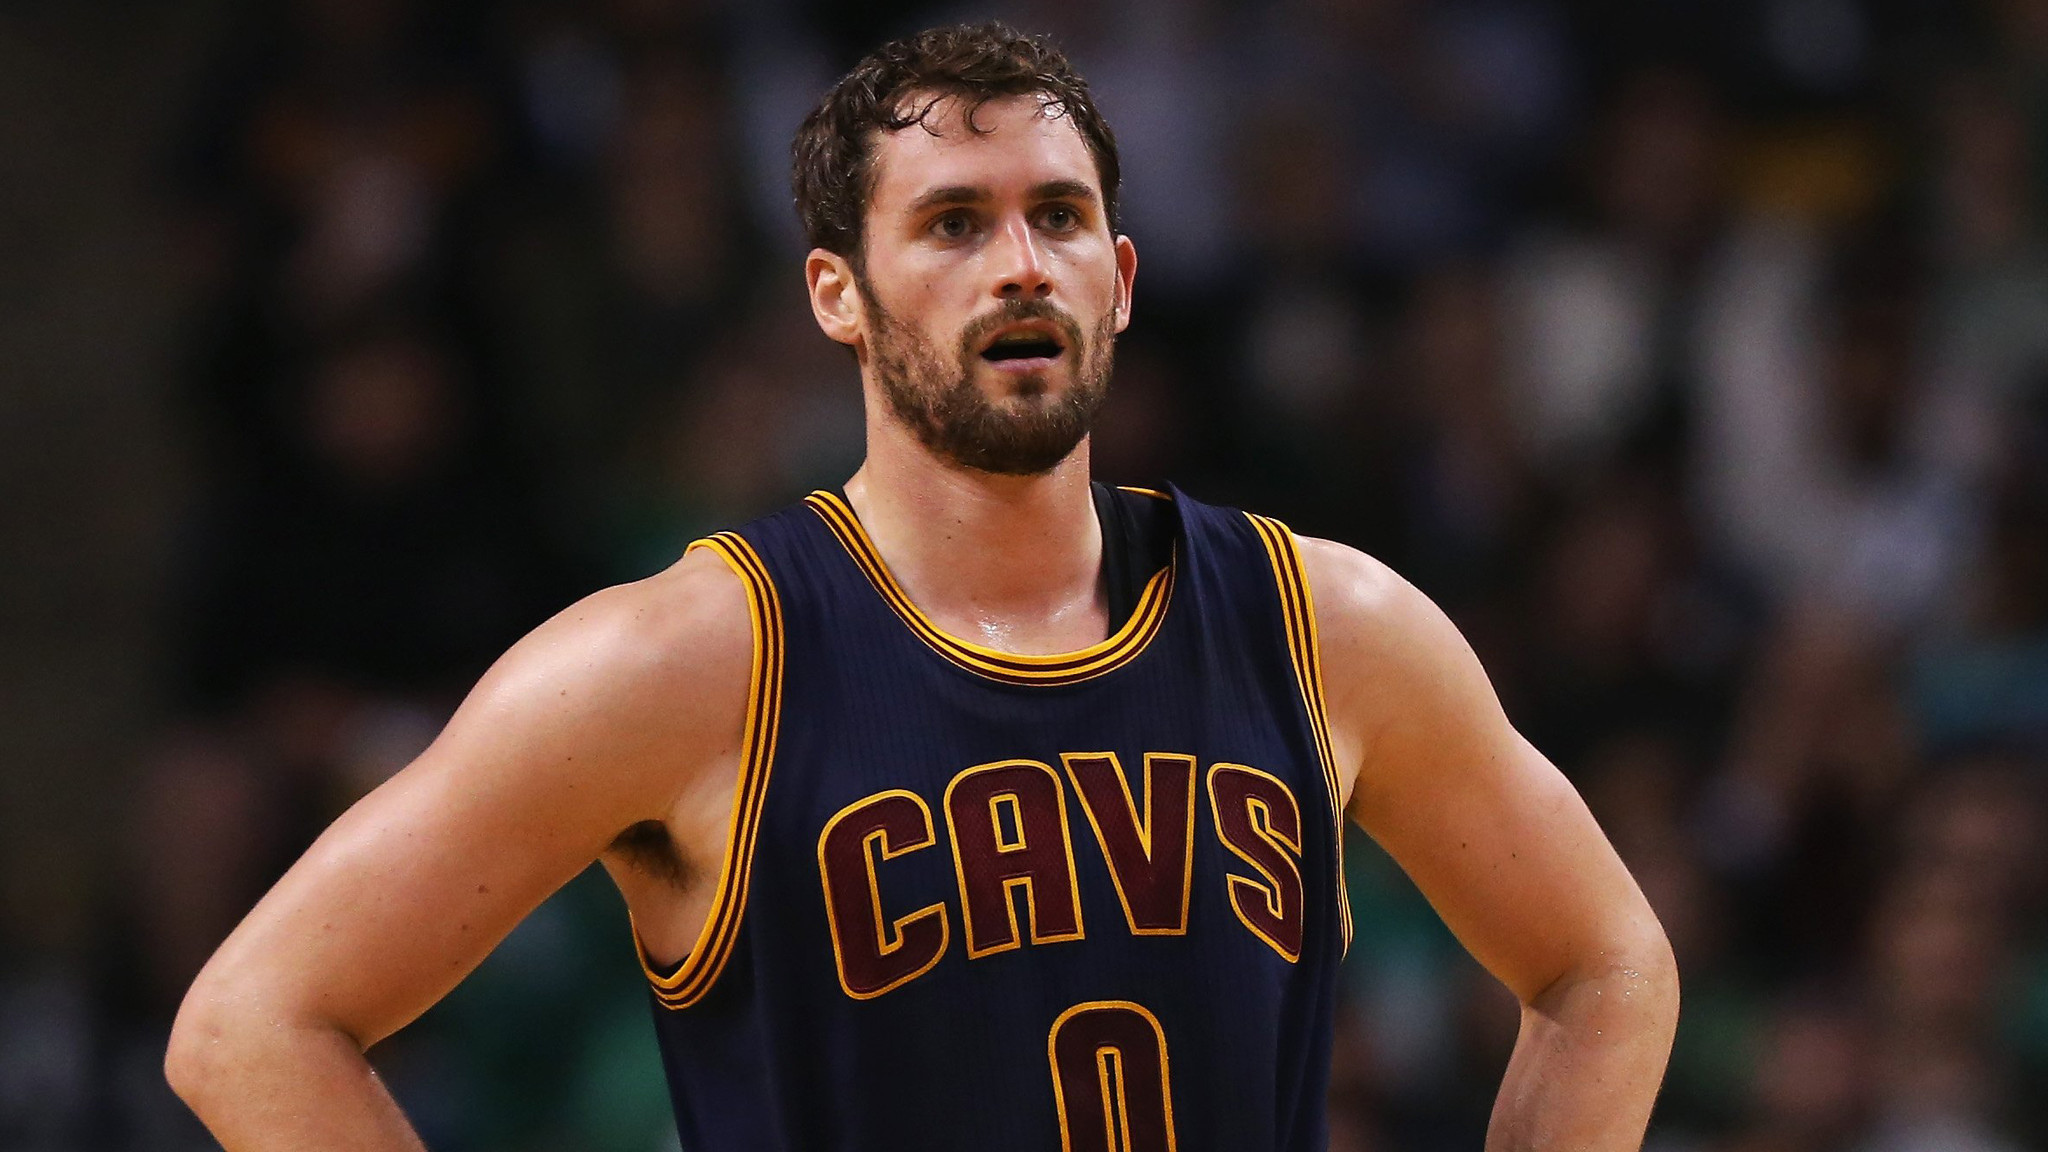 kevin love says he plans to return to cleveland cavaliers